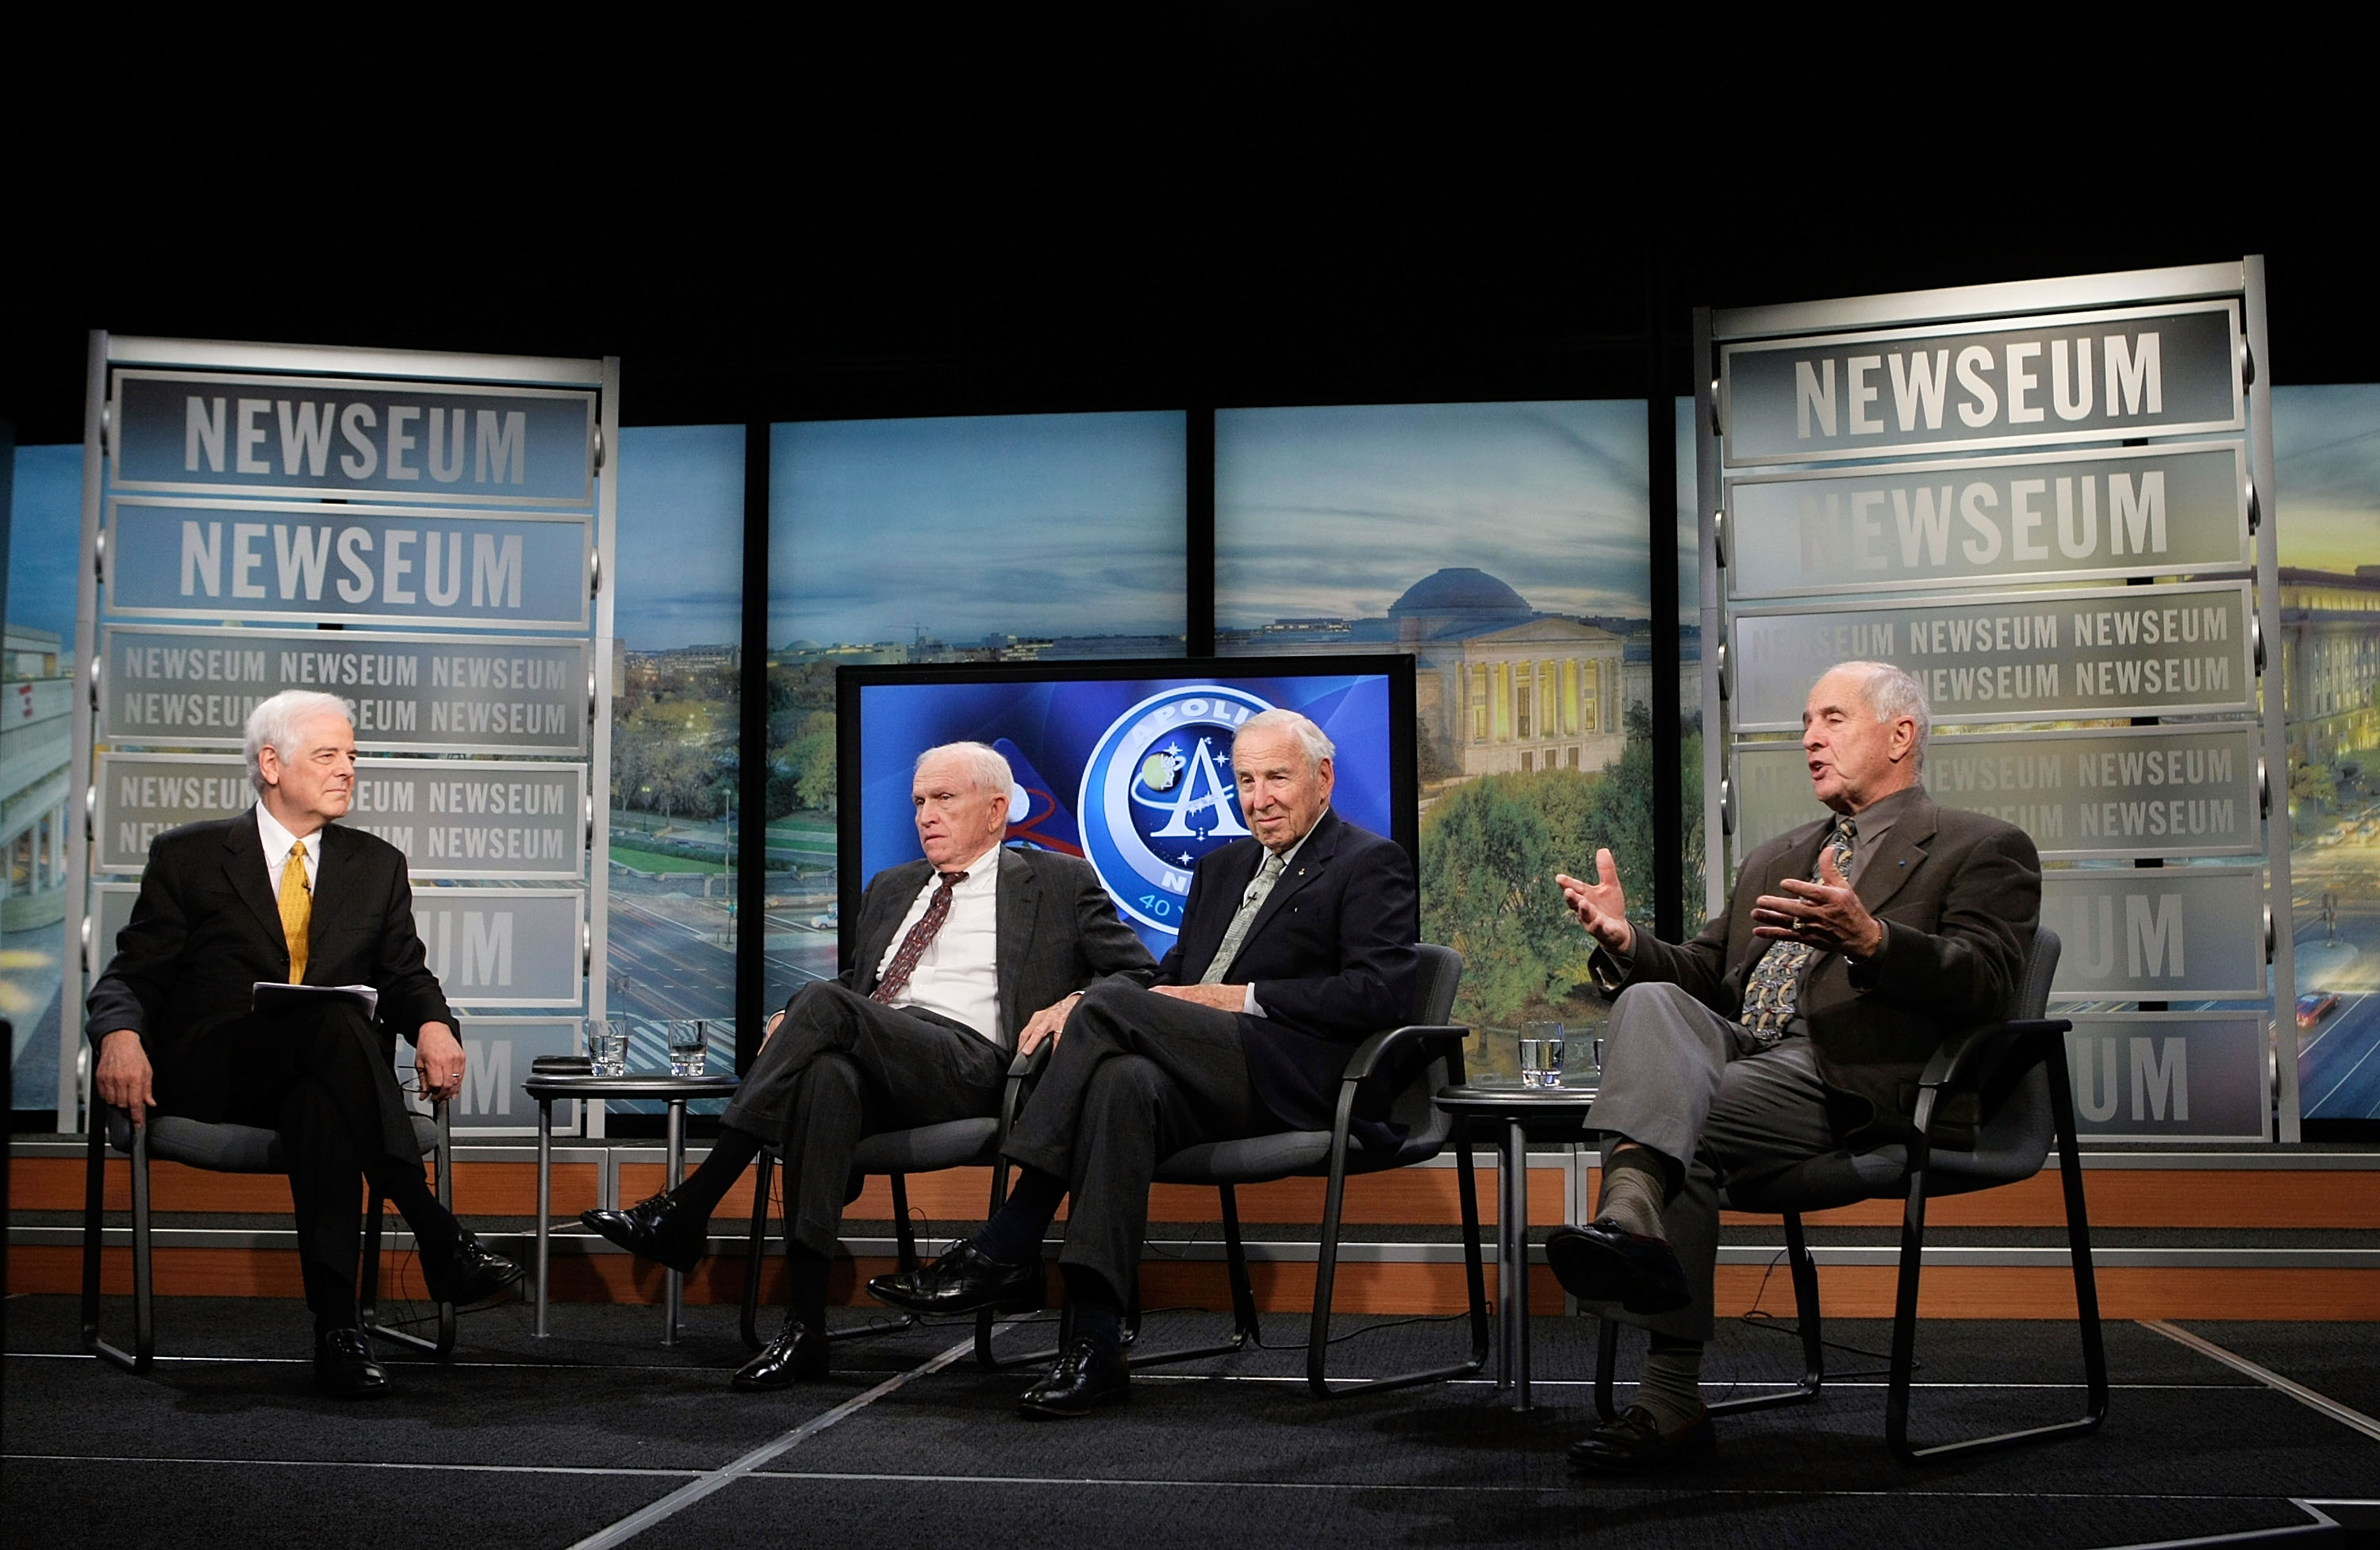 WASHINGTON - NOVEMBER 13: (2nd L  R) Apollo 8 Crew Members Frank Borman, James Lovell, and William Anders chat with Journalist in Residence at the Newseum Nick Clooney (L) during a live taping of a NASA TV program at the Newseum November 13, 2008 in Washington, DC. The former astronauts participated in a discussion on the December 1968 lunar orbital mission and how the success of Apollo 8 contributed to the overall moon landing effort that culminated just six months later with Apollo 11 and to commemorate NASA's 50th anniversary. (Photo by Alex Wong/Getty Images)